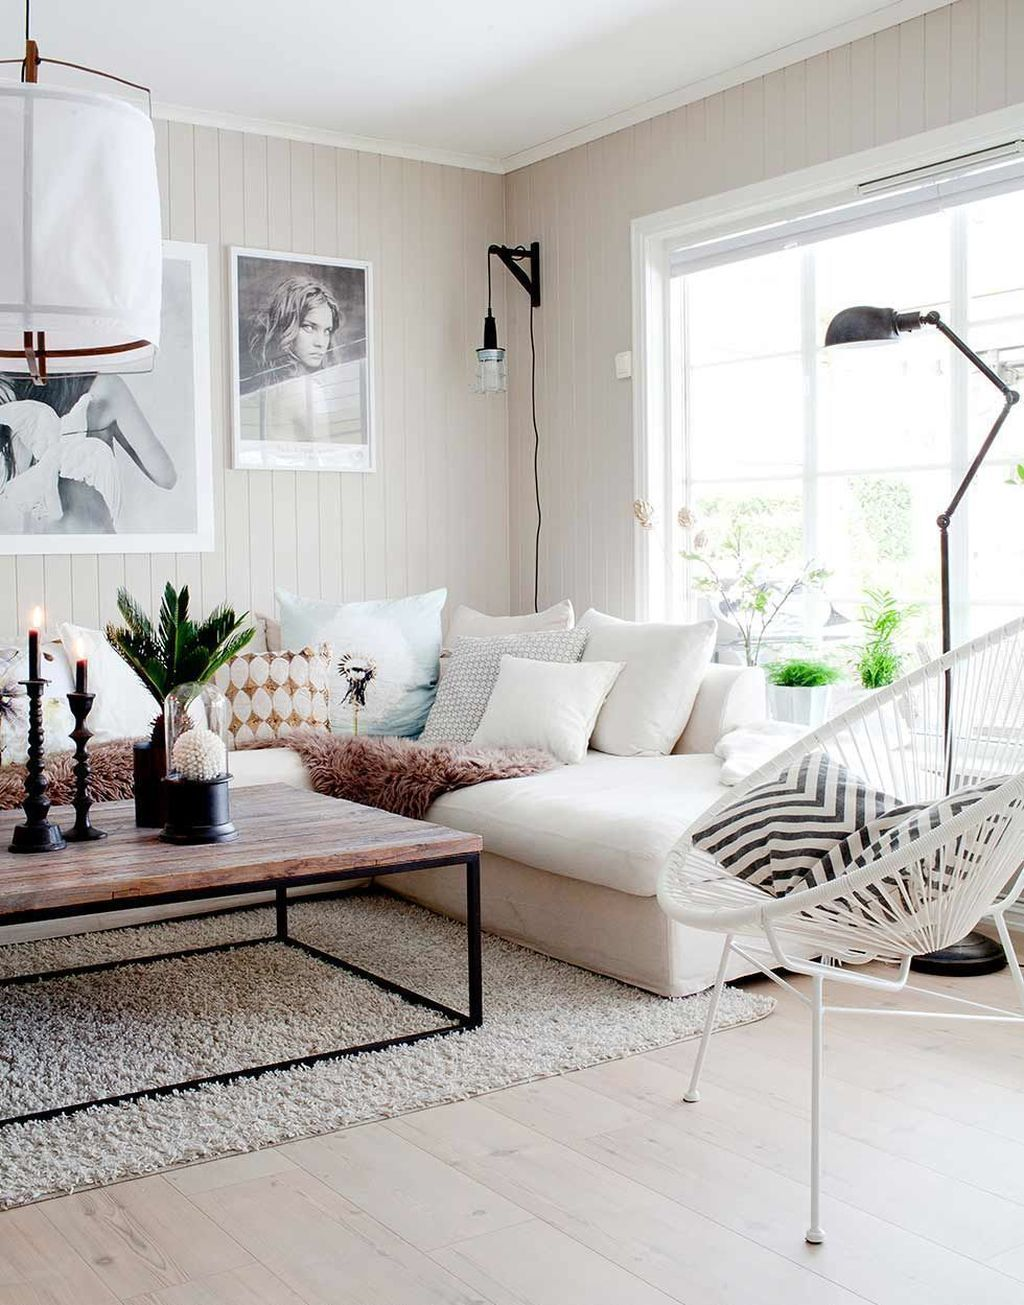 30 Awesome Apartment Decorating Ideas On A Budget | Pinterest ...